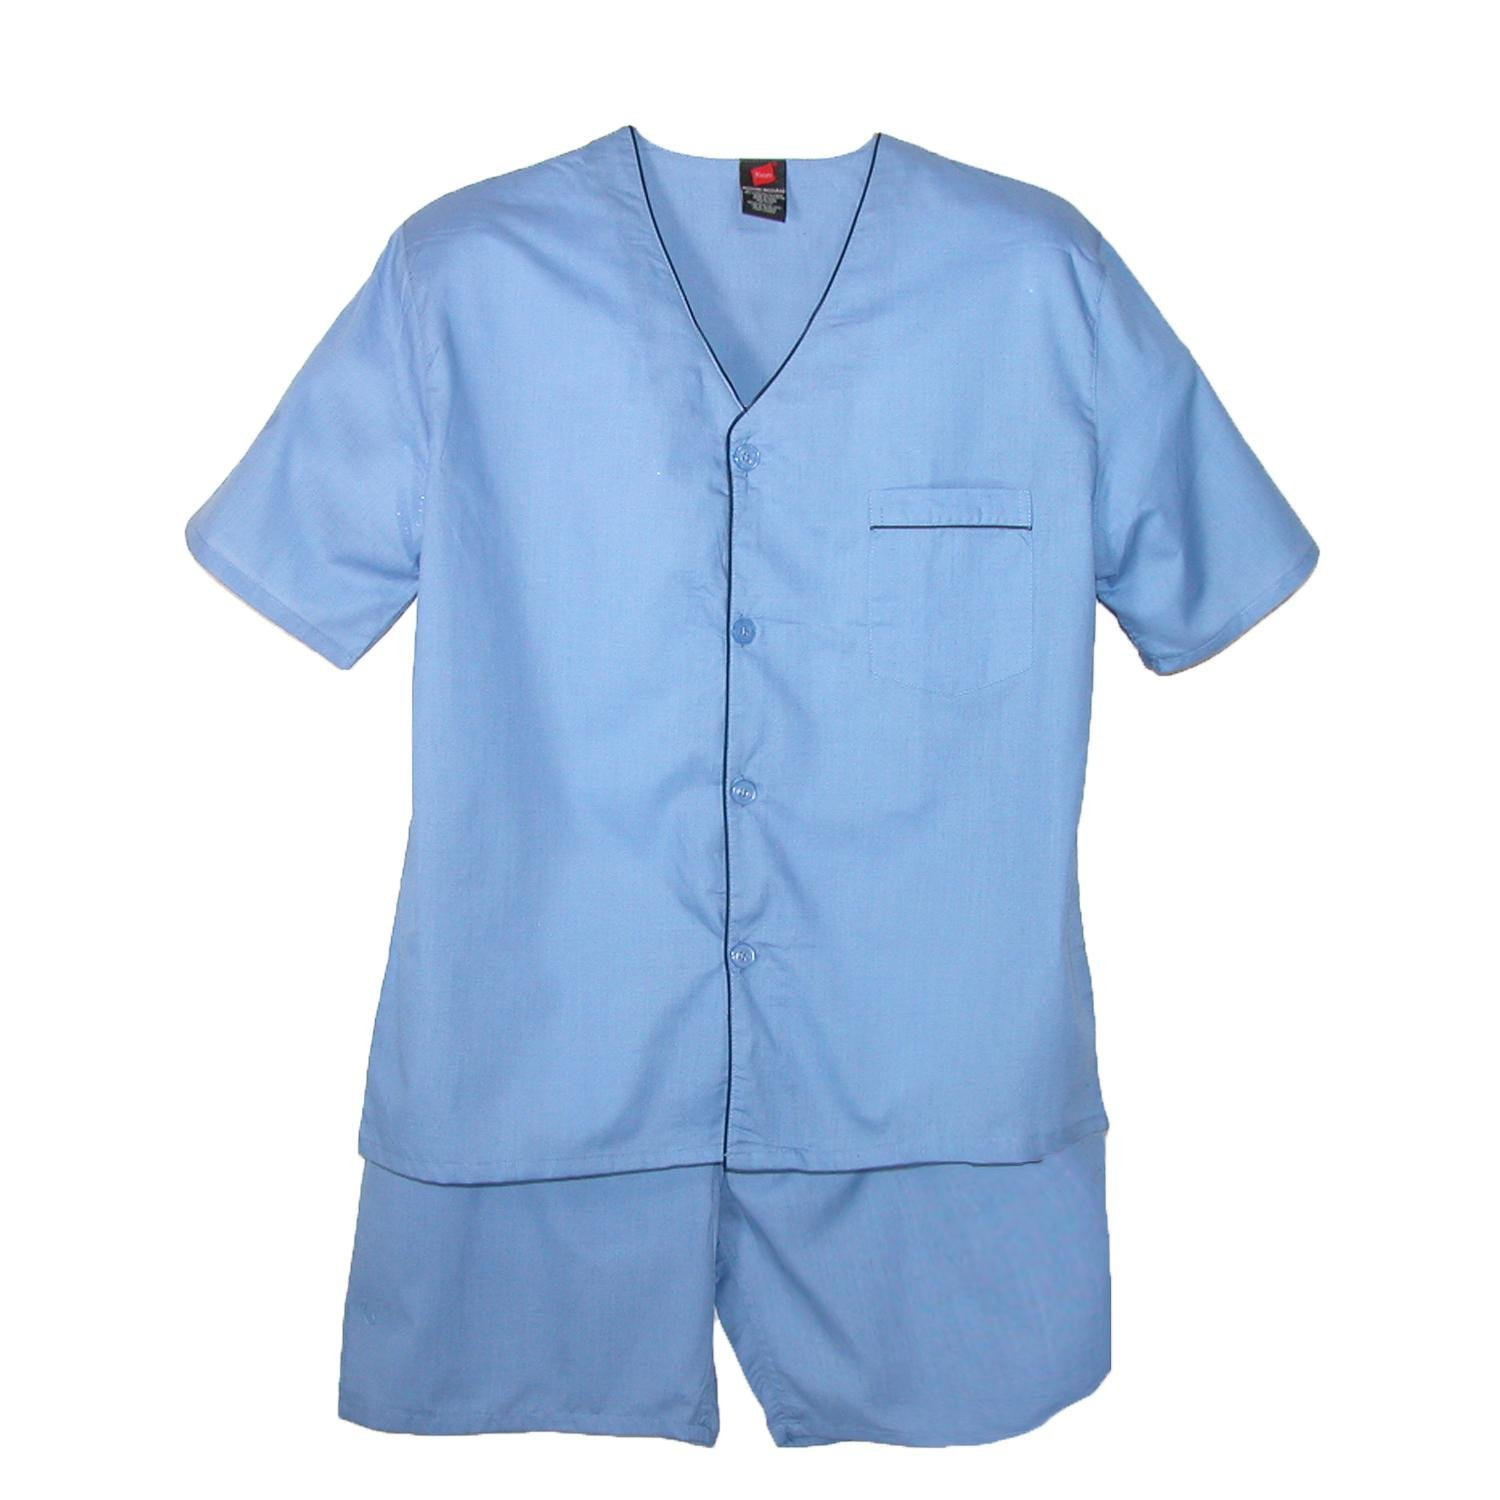 Hanes Men's Short Sleeve Short Leg Pajama Set, XL, Blue by Hanes